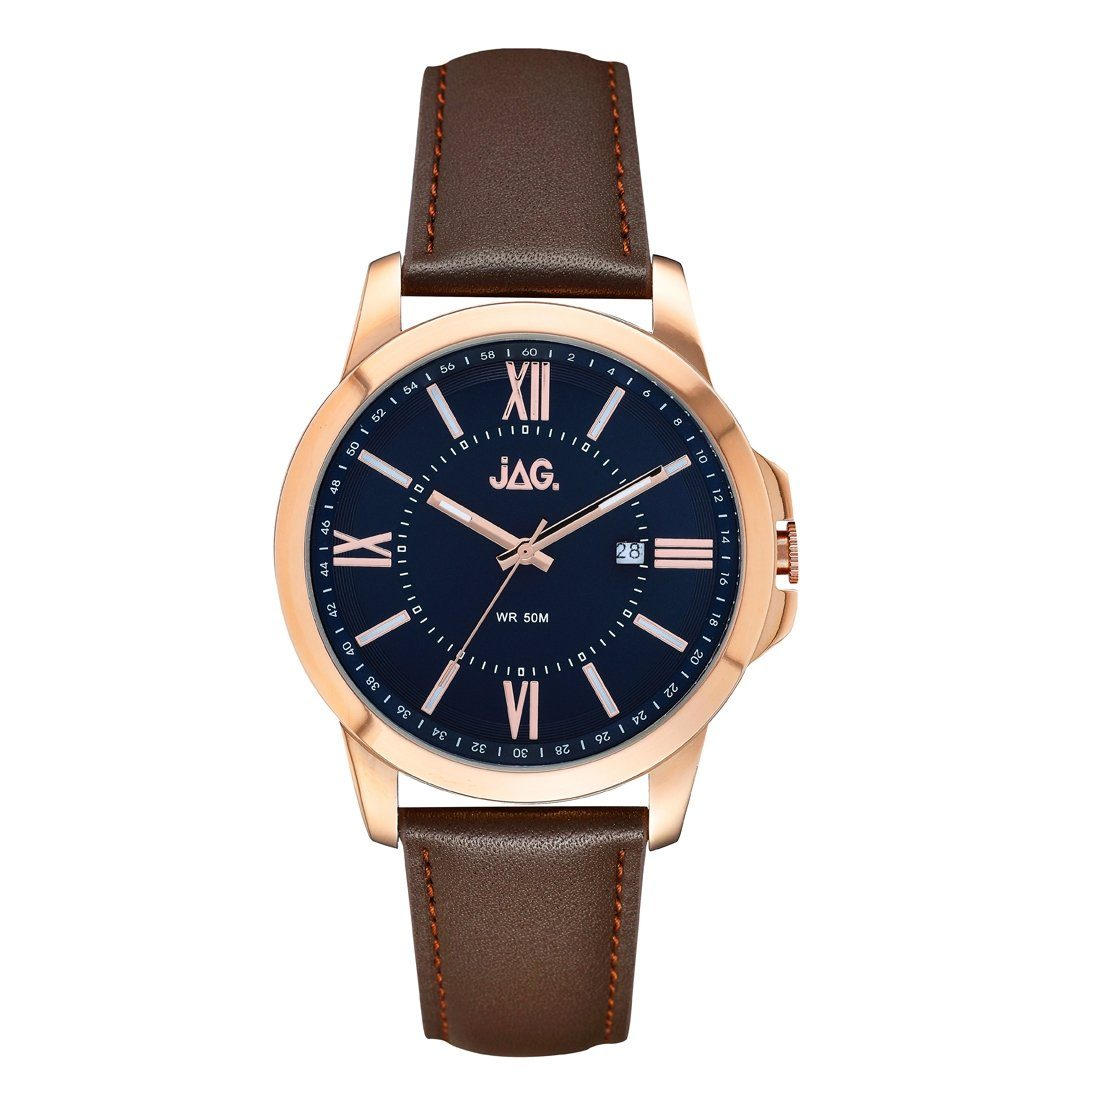 Jag JAG Men's Xavier Leather Band Watch J2155 Leather-Stainless Steel 3 Hands-Date 9325452001704